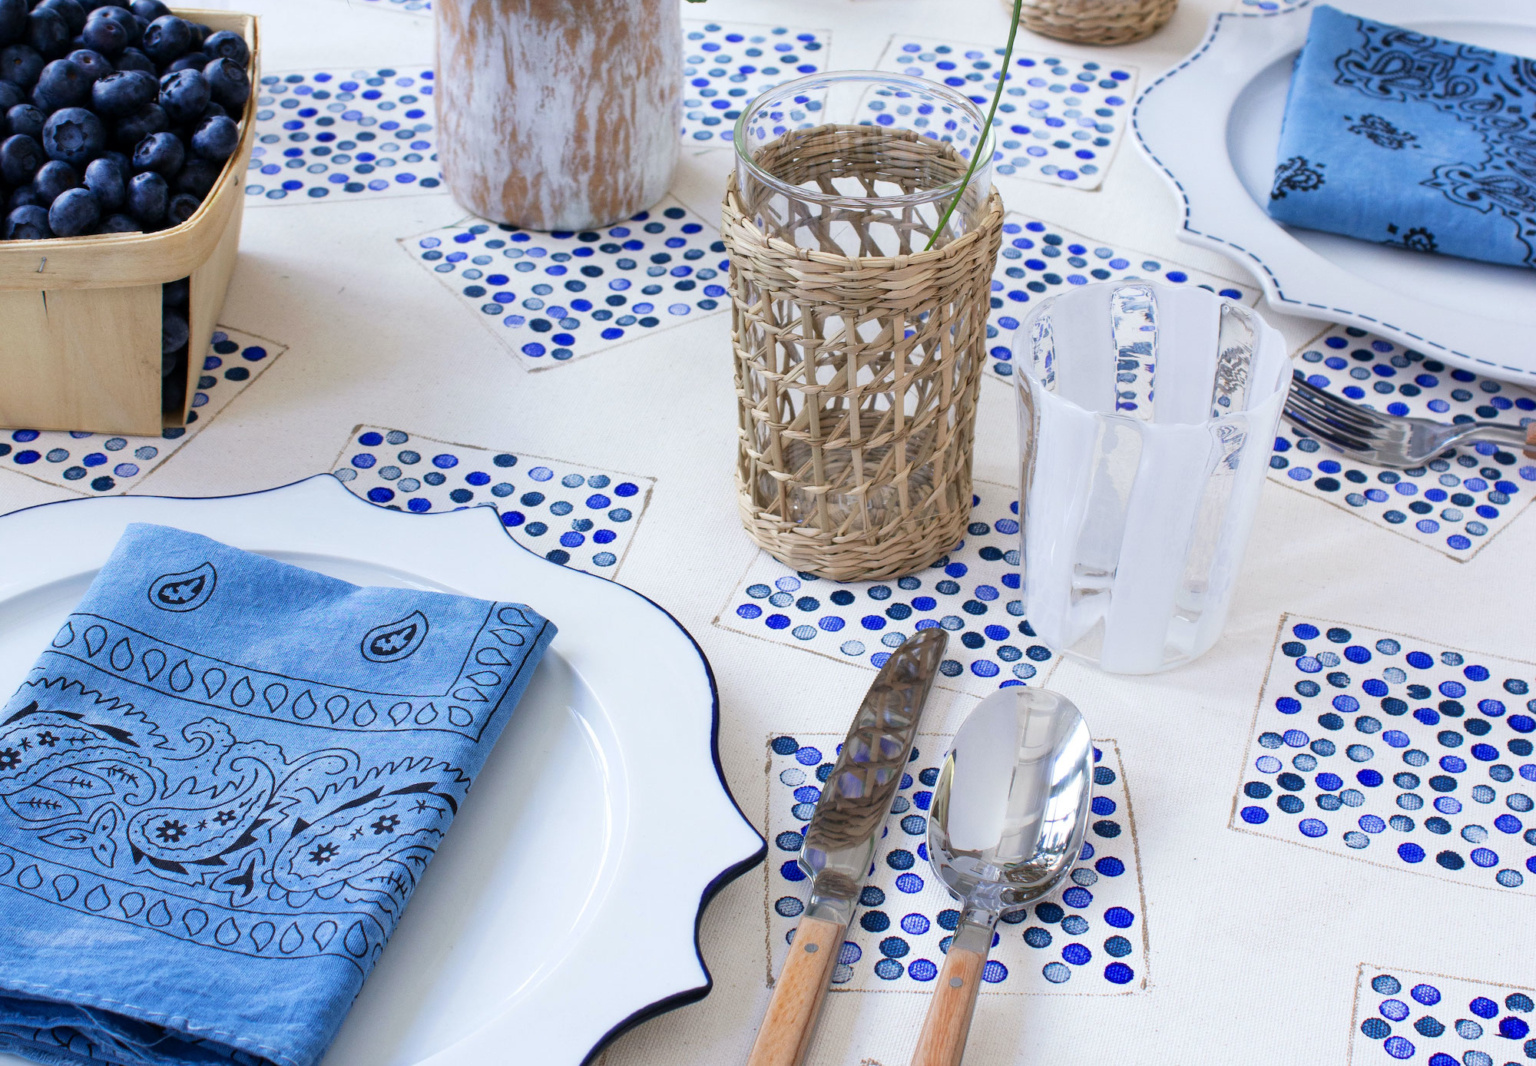 Fourth of July DIY: An Easy-Breezy Blueberry-Inspired Tablecloth by David Stark